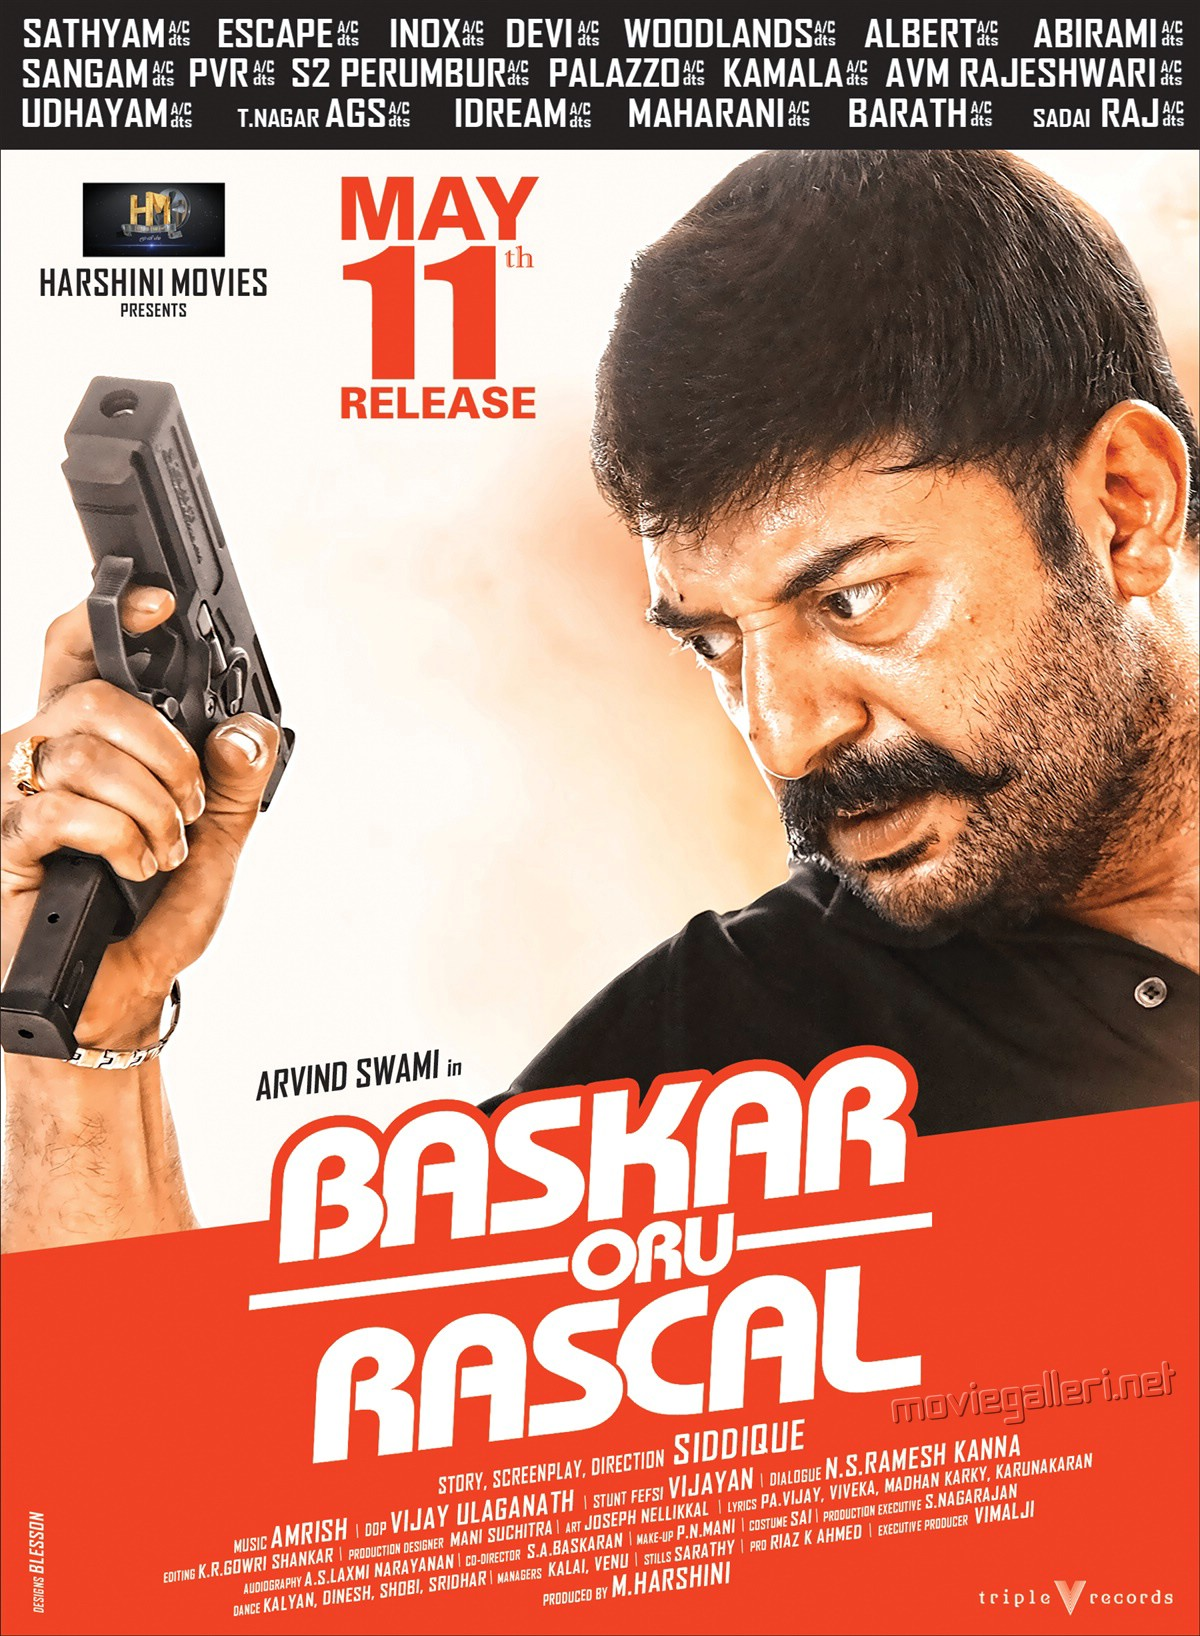 Arvind Swamy in Bhaskar Oru Rascal Movie Release Date May 11th Posters